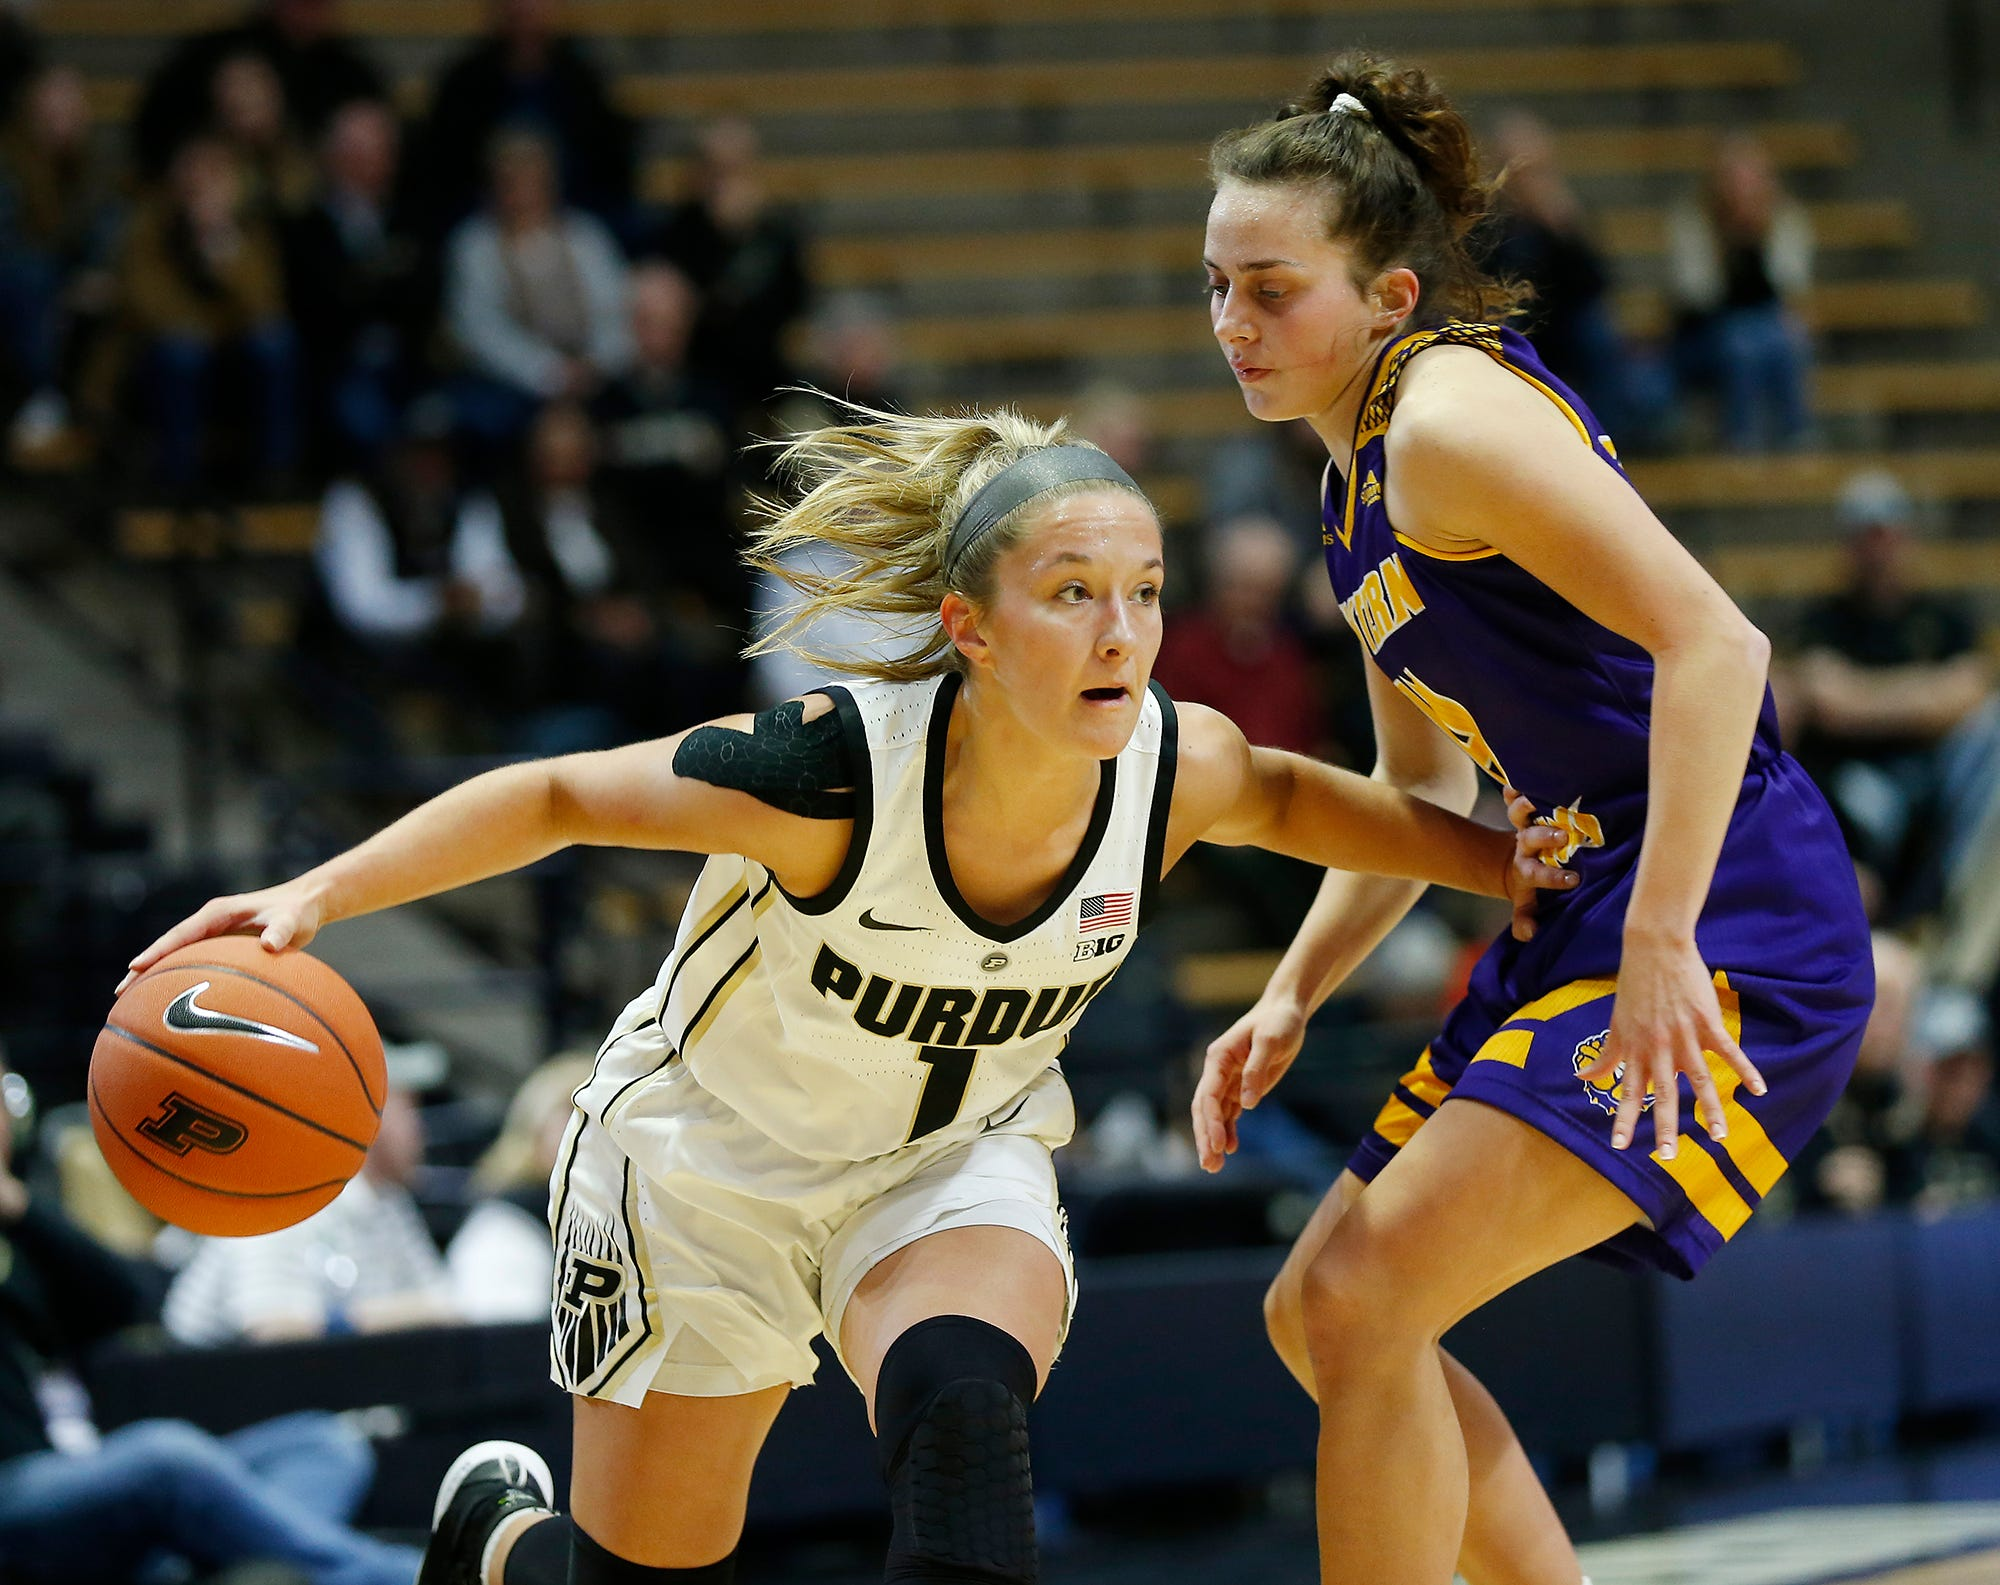 Purdue guard Karissa McLaughlin gets a step on Elizabeth Lutz of Western Illinois.